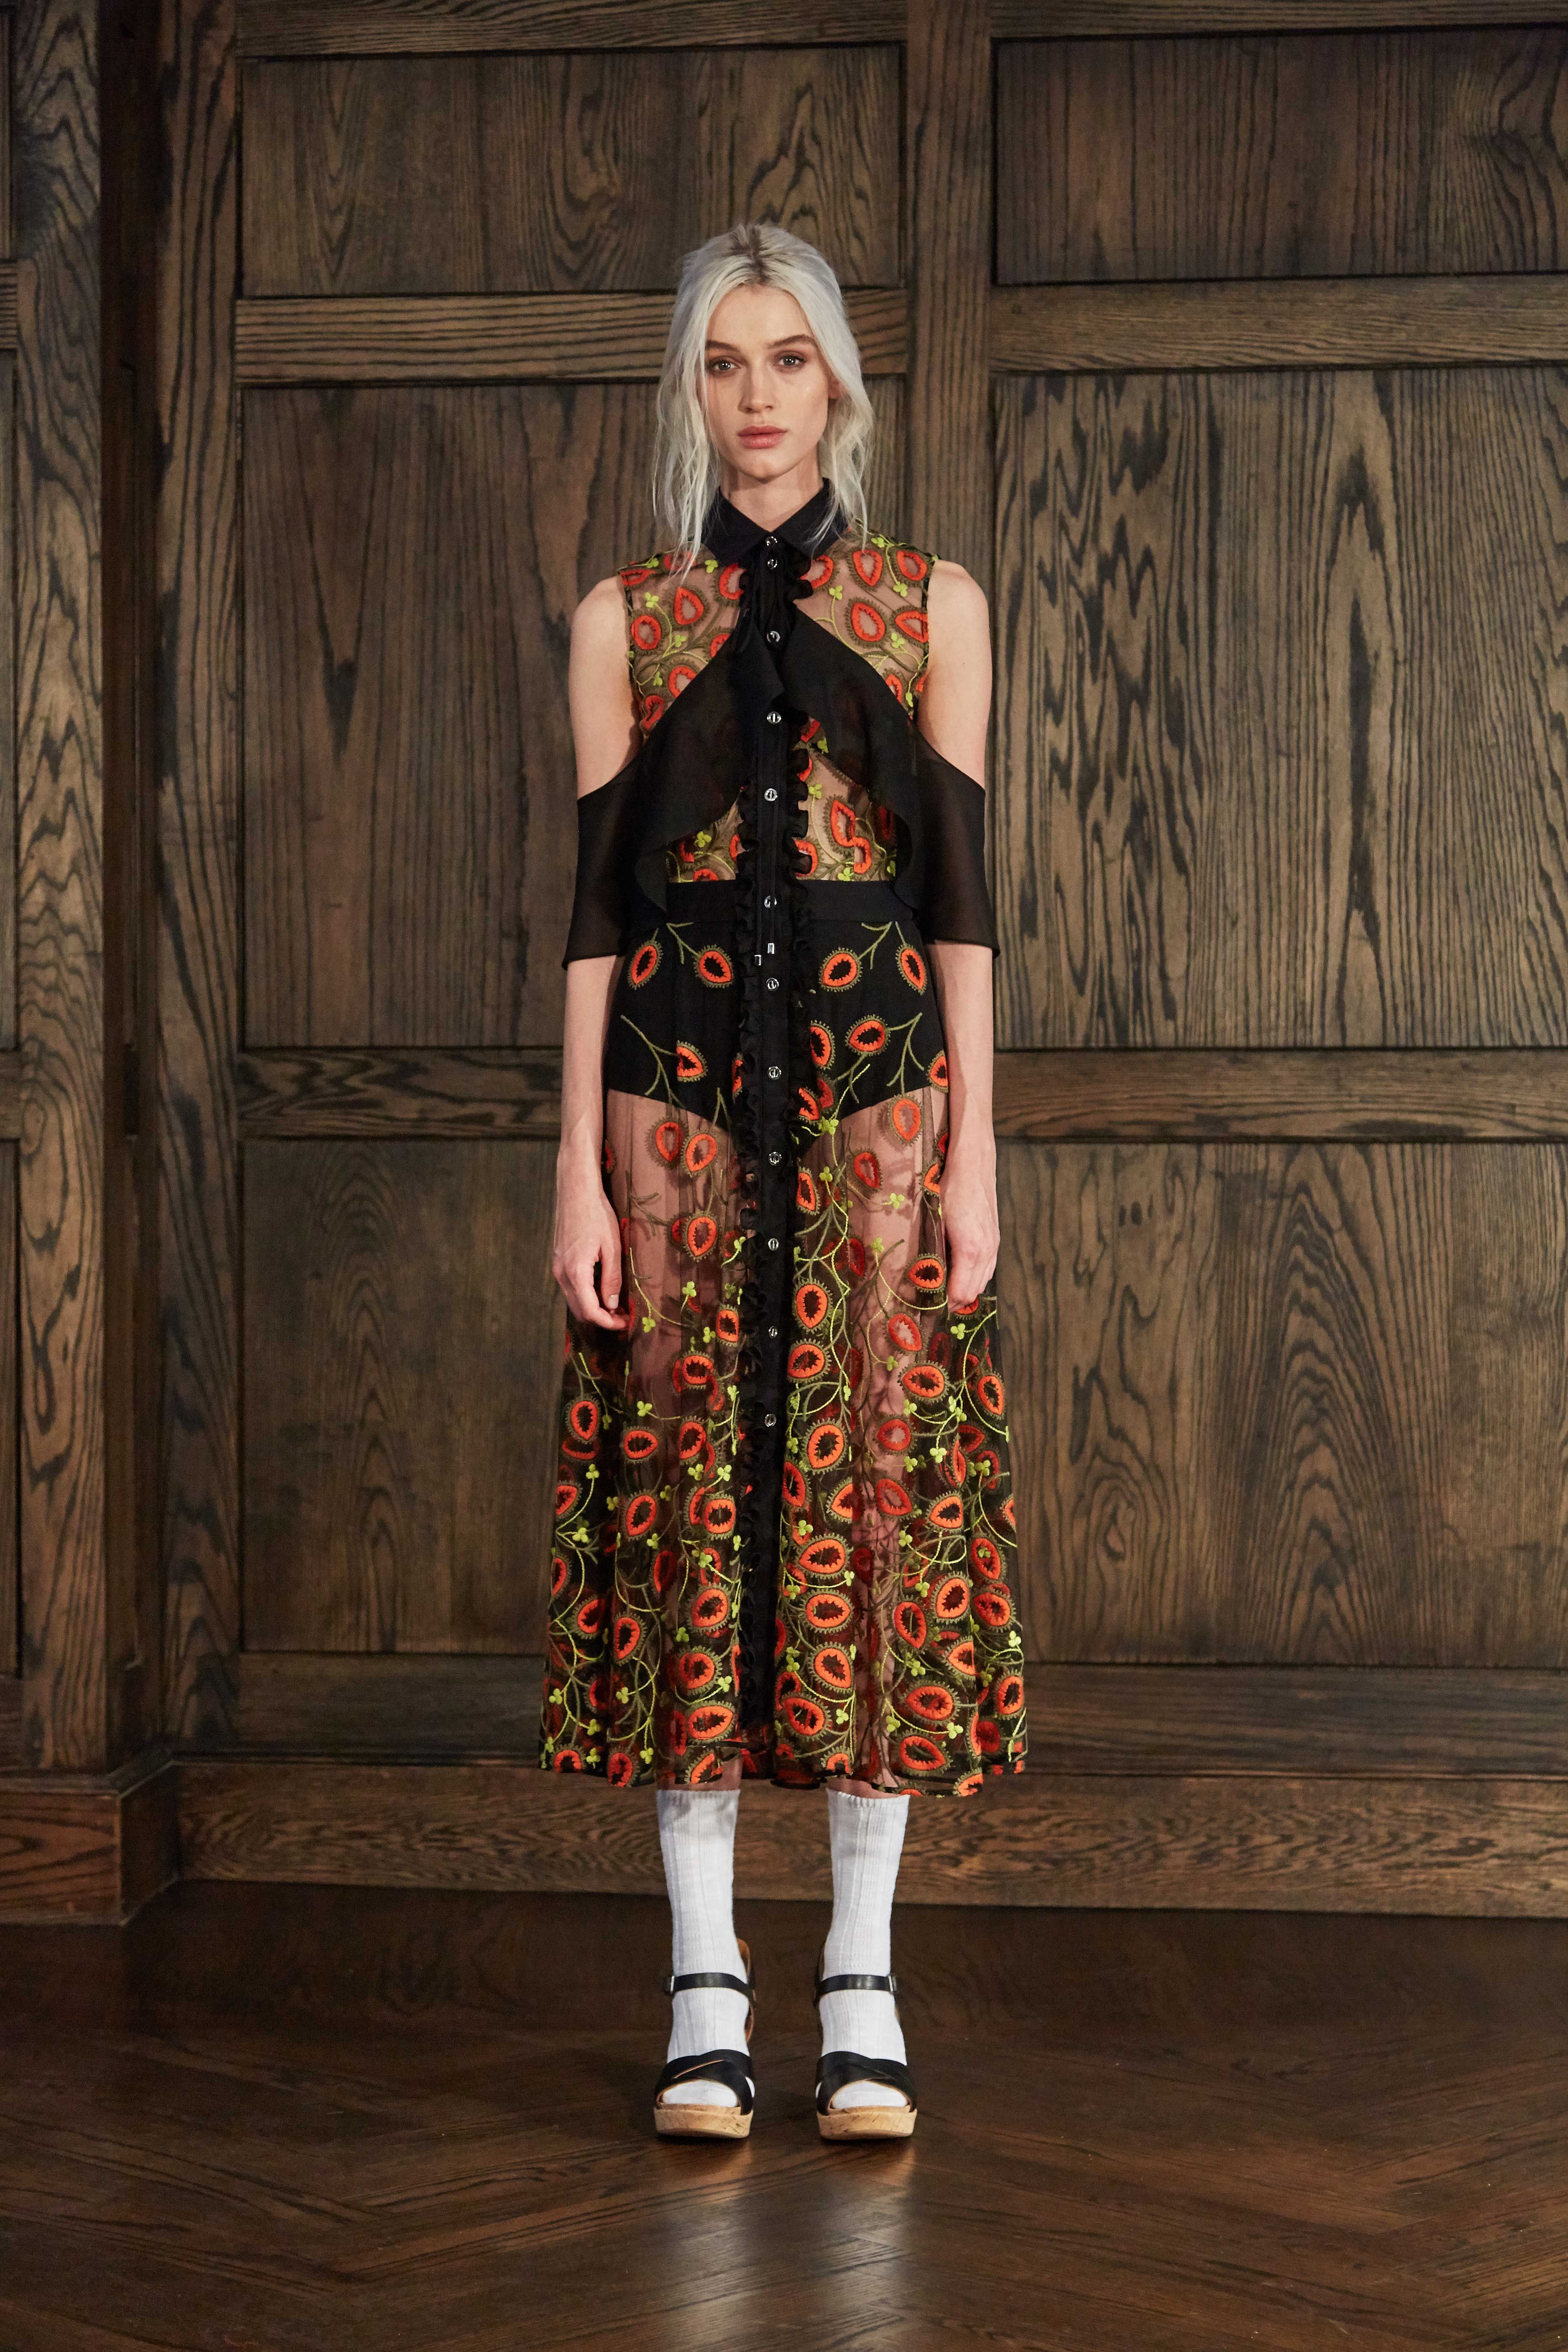 "<p>For the <a href=""http://www.marieclaire.com/fashion/news/a21158/ohlin-d-brand-intro/"" target=""_blank"" data-tracking-id=""recirc-text-link"">impressive brand</a>'s third presentation, designers Anne Deane and Jacob Park<span class=""redactor-invisible-space"" data-verified=""redactor"" data-redactor-tag=""span"" data-redactor-class=""redactor-invisible-space""> took last season's lost-in-the-big-city Little Bo Peep to school, referencing ""off-duty"" academics with high collars and pussy bows, and continuing their artist collaboration series with Emily Russell<span class=""redactor-invisible-space"" data-verified=""redactor"" data-redactor-tag=""span"" data-redactor-class=""redactor-invisible-space"">'s watercolors. Look to this duo for clever, not-too-sweet sportswear and the coziest knits.</span></span></p>"